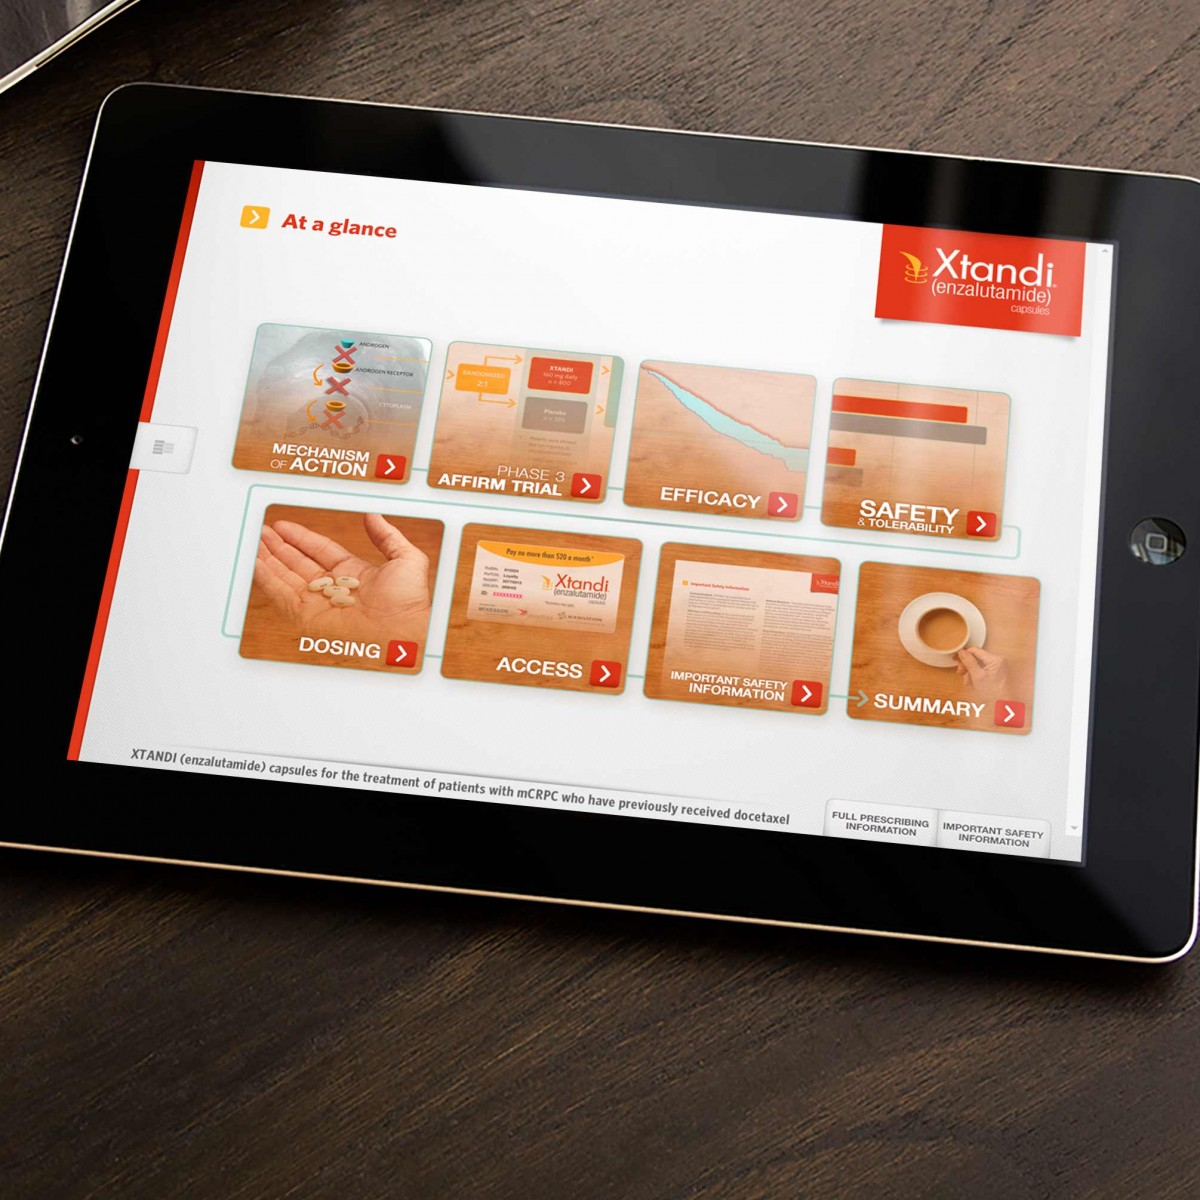 Astellas Interactive iPad Salesforce Sales Aid